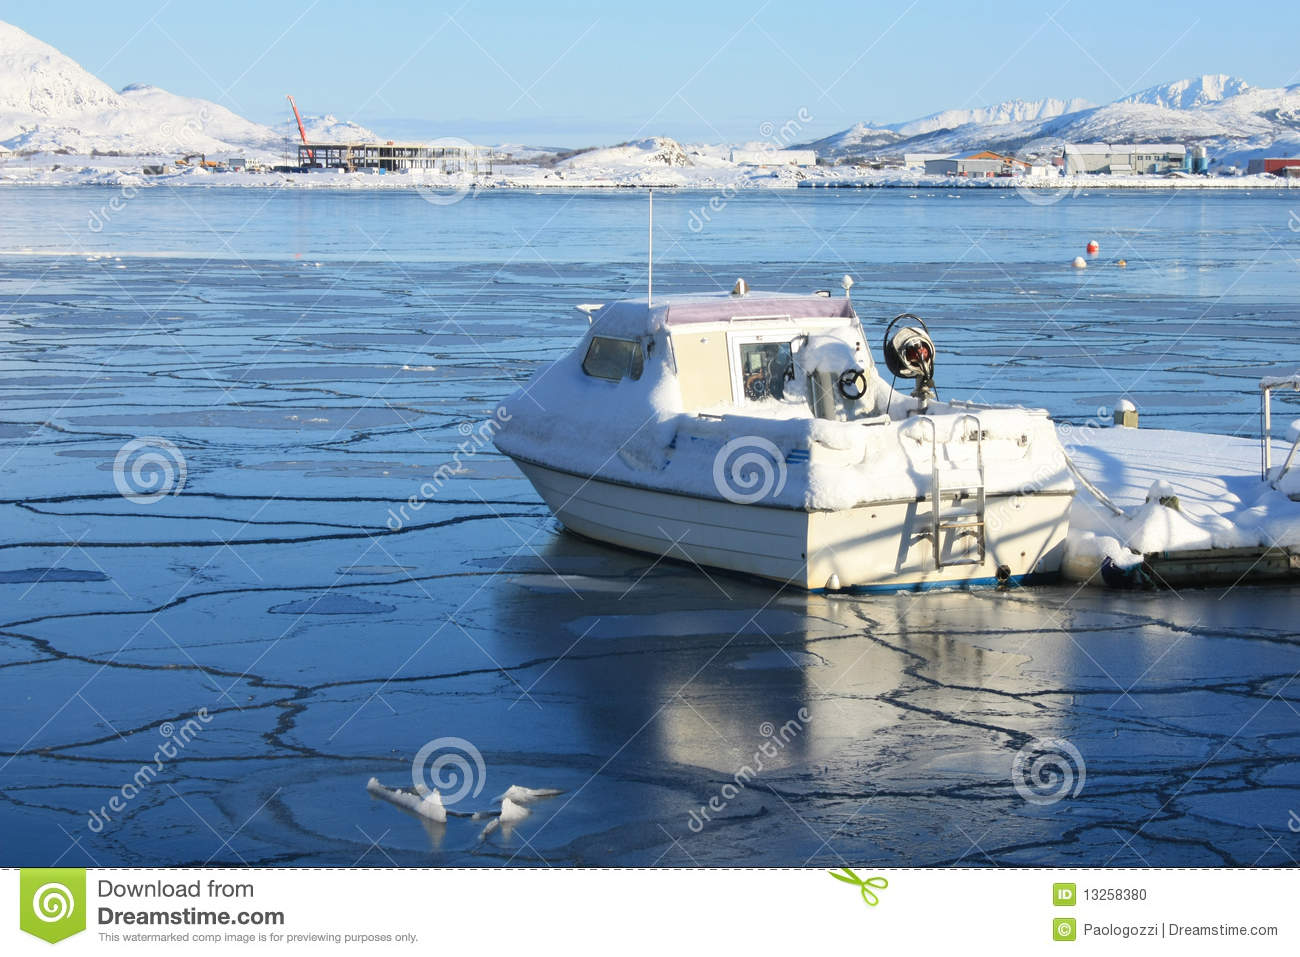 Boat on icy bay